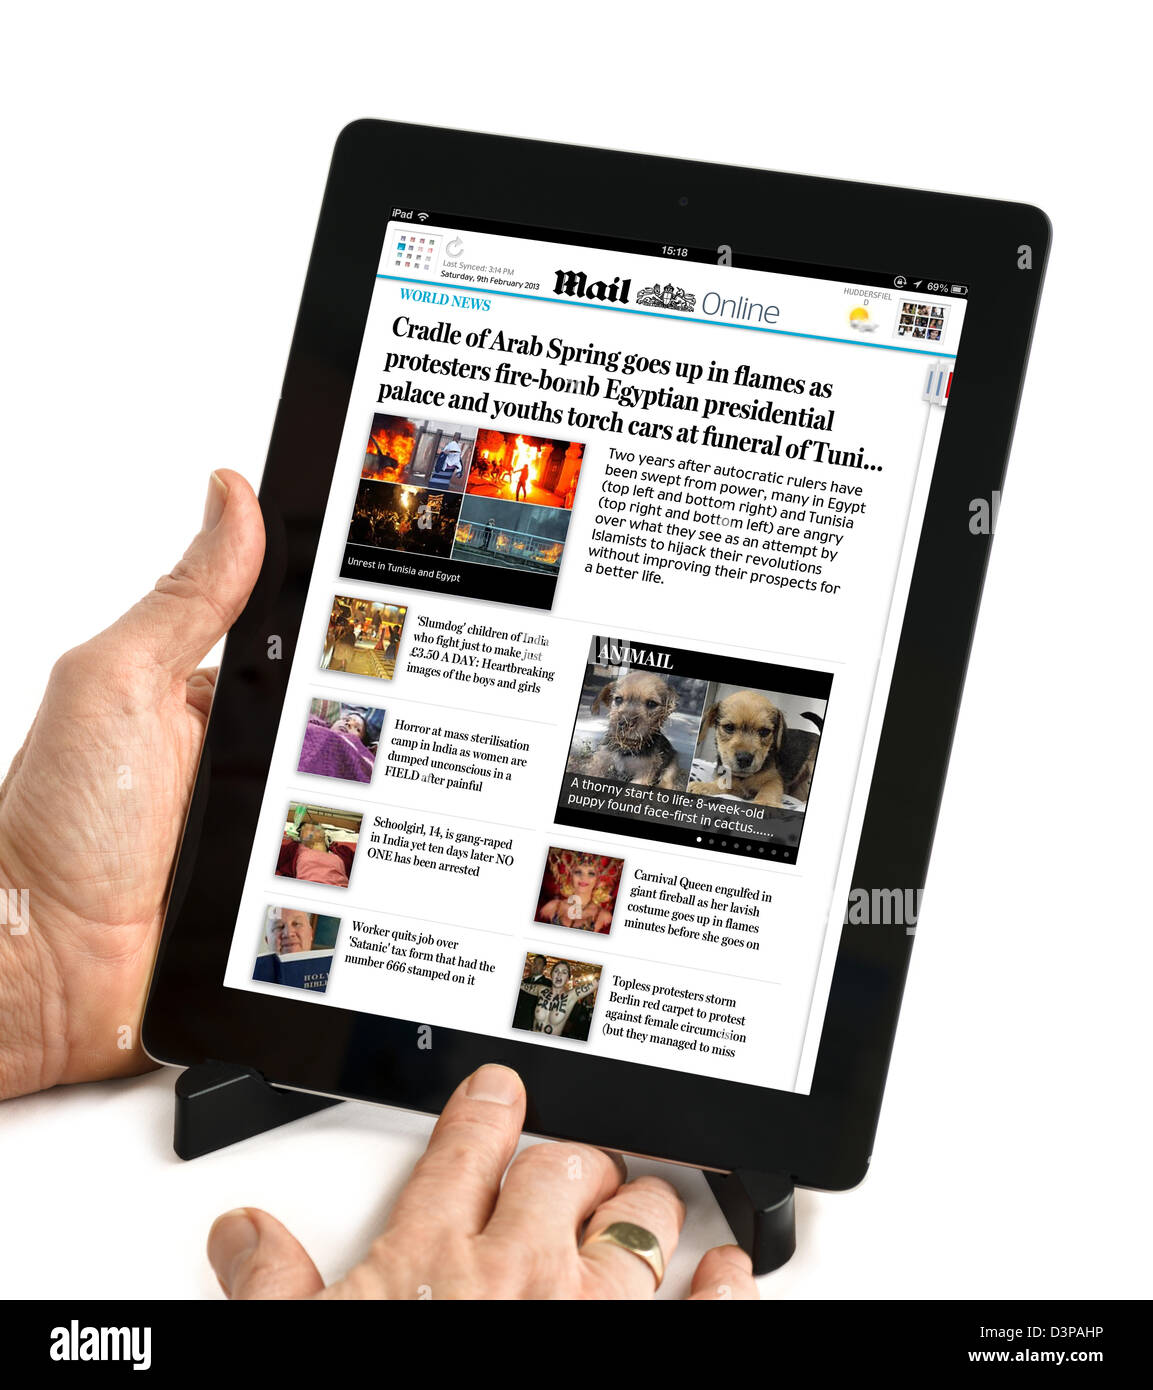 Using the Daily Mail app to read the Mail Online newspaper on a 4th Generation iPad, UK - Stock Image